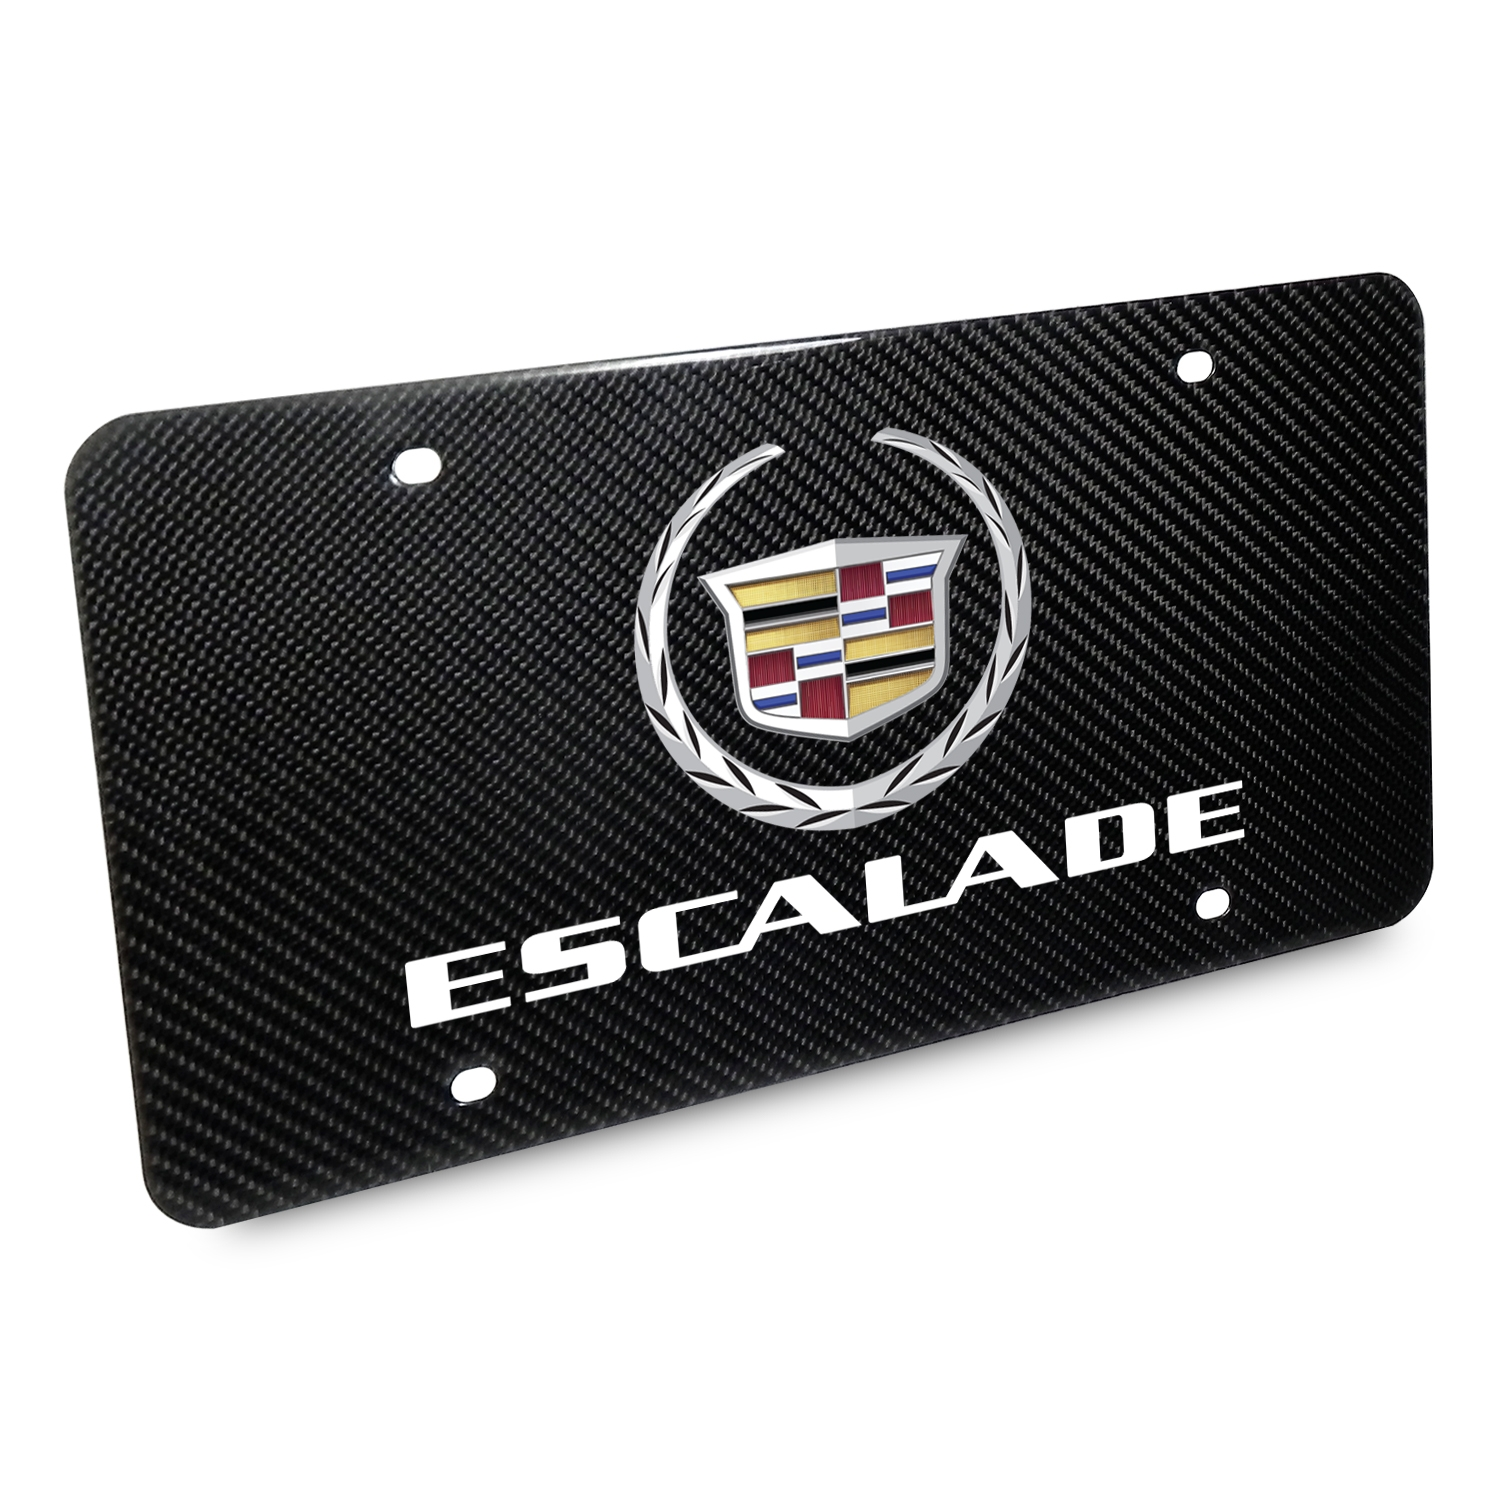 Cadillac Escalade 2007 Logo UV Graphic 100% Real Black Carbon Fiber License Plate